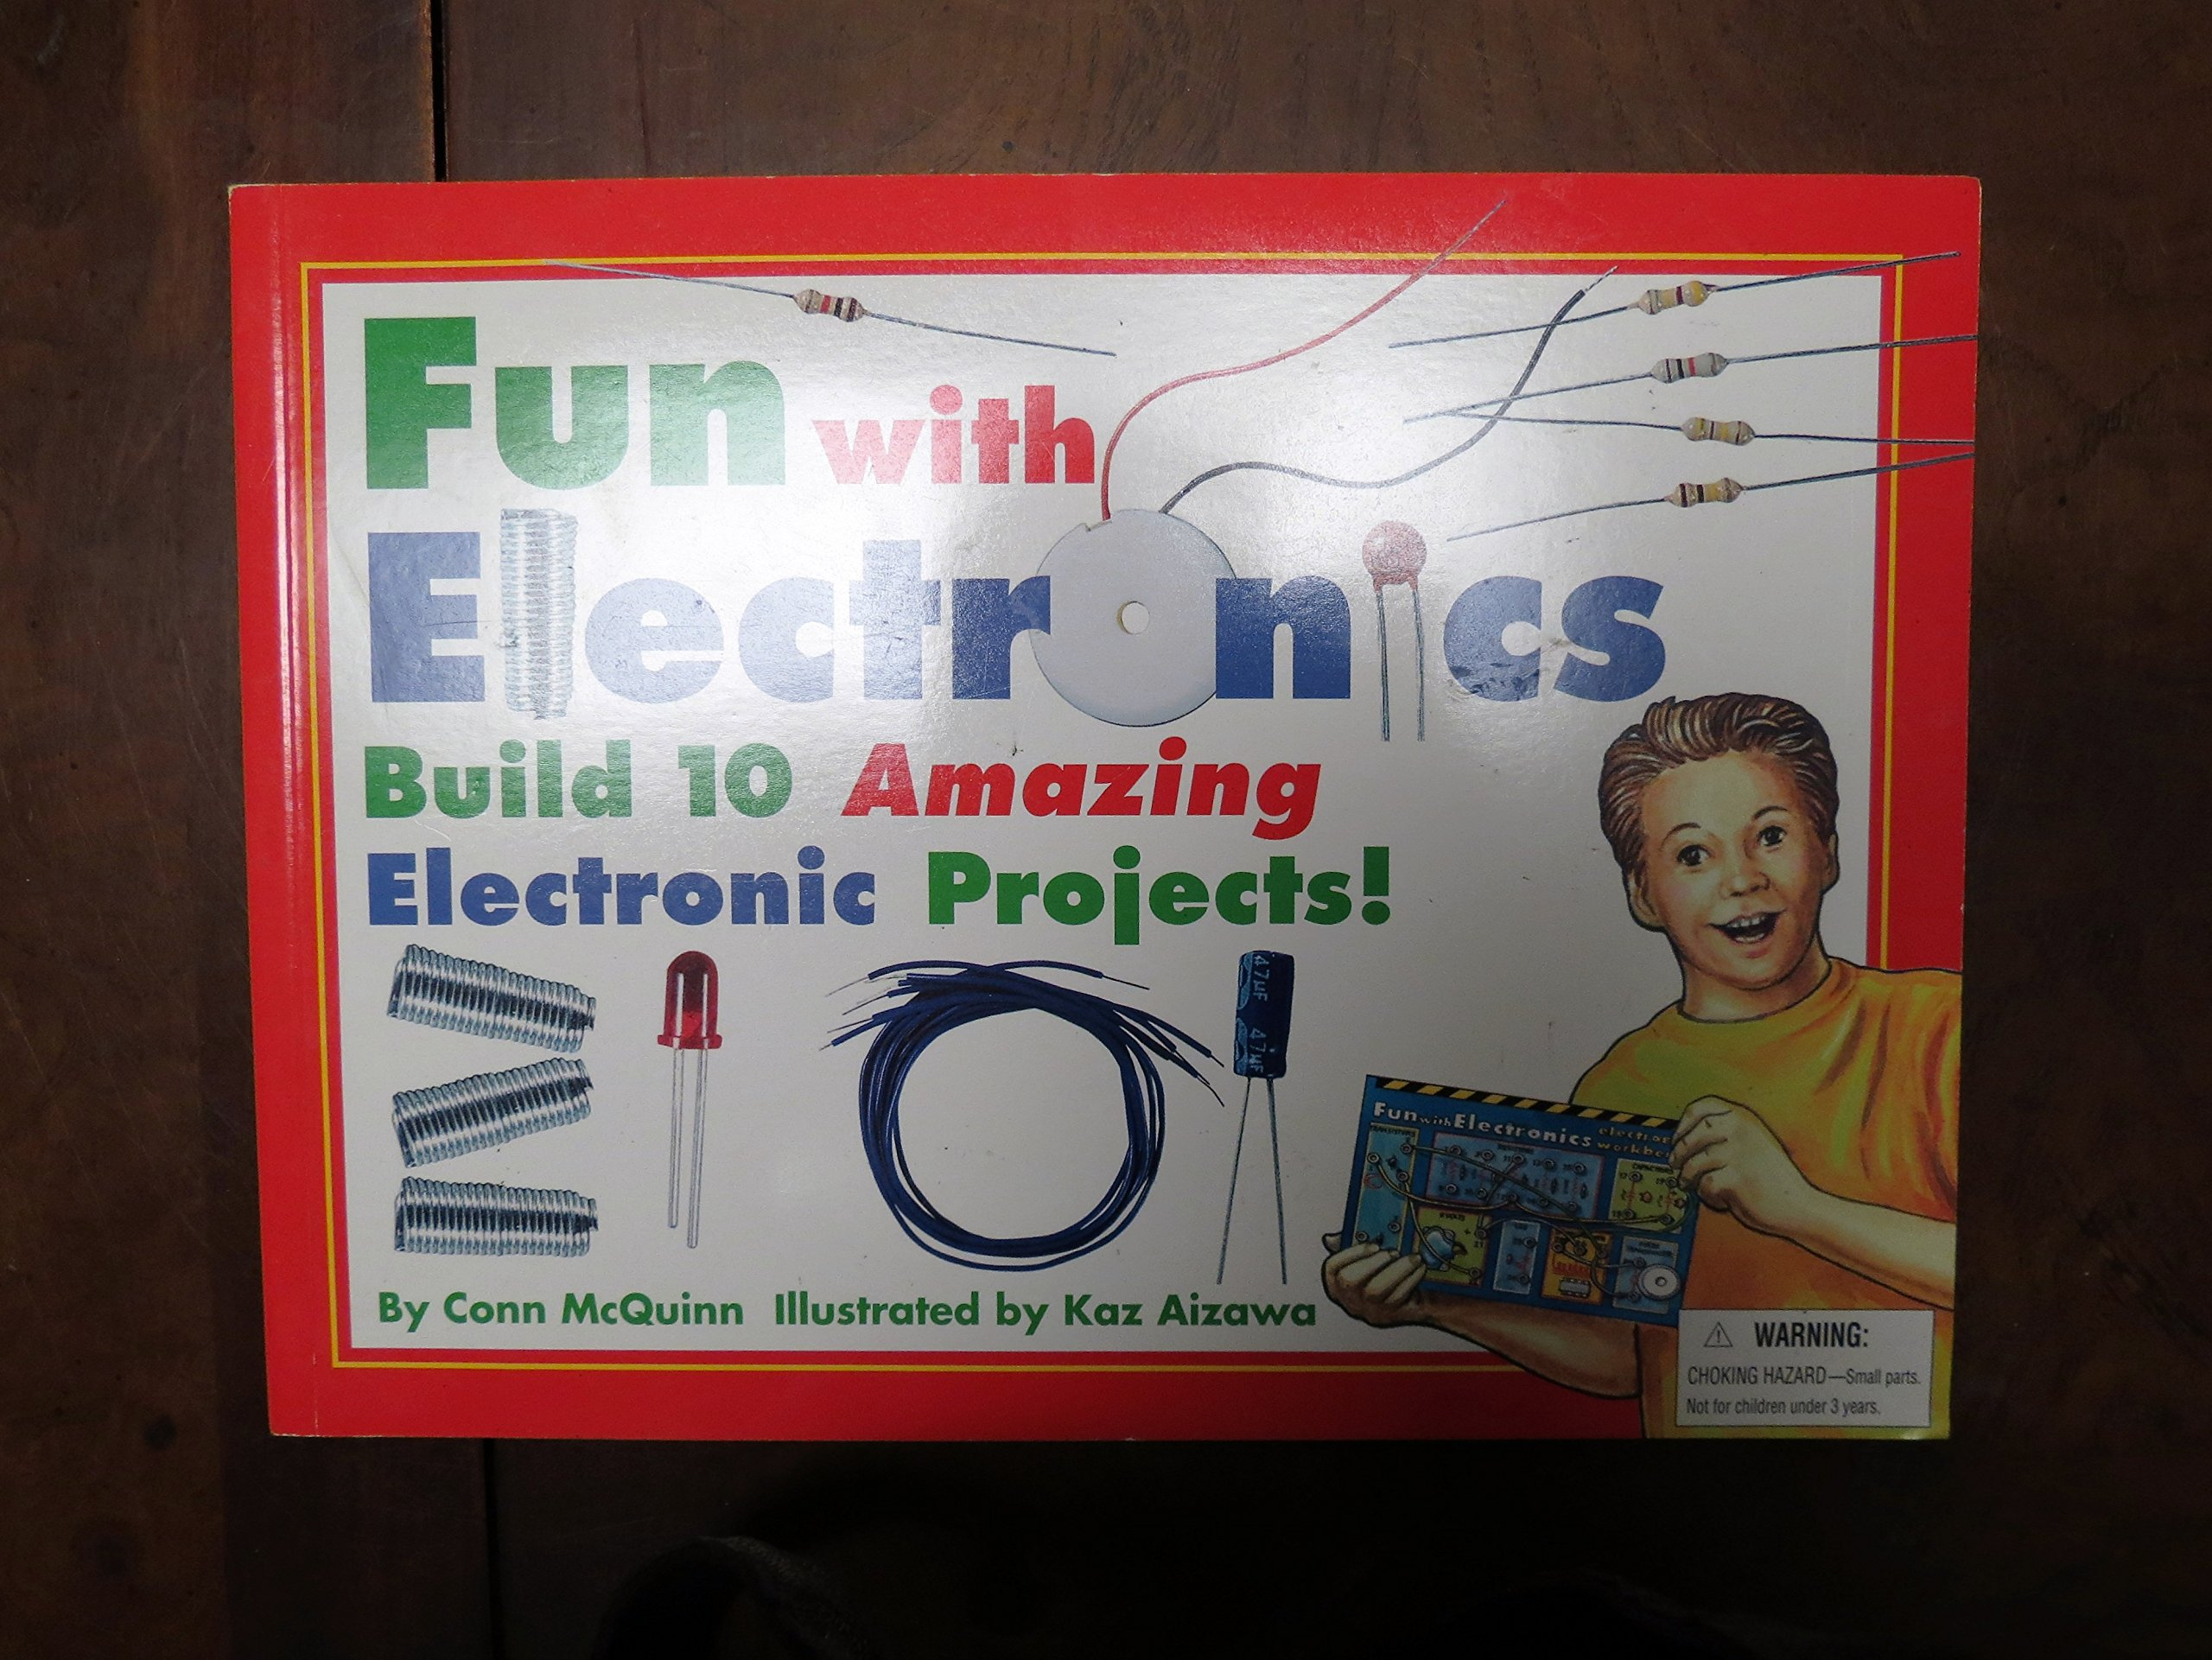 Fun with Electronics: Build 10 Amazing Electronic Projects